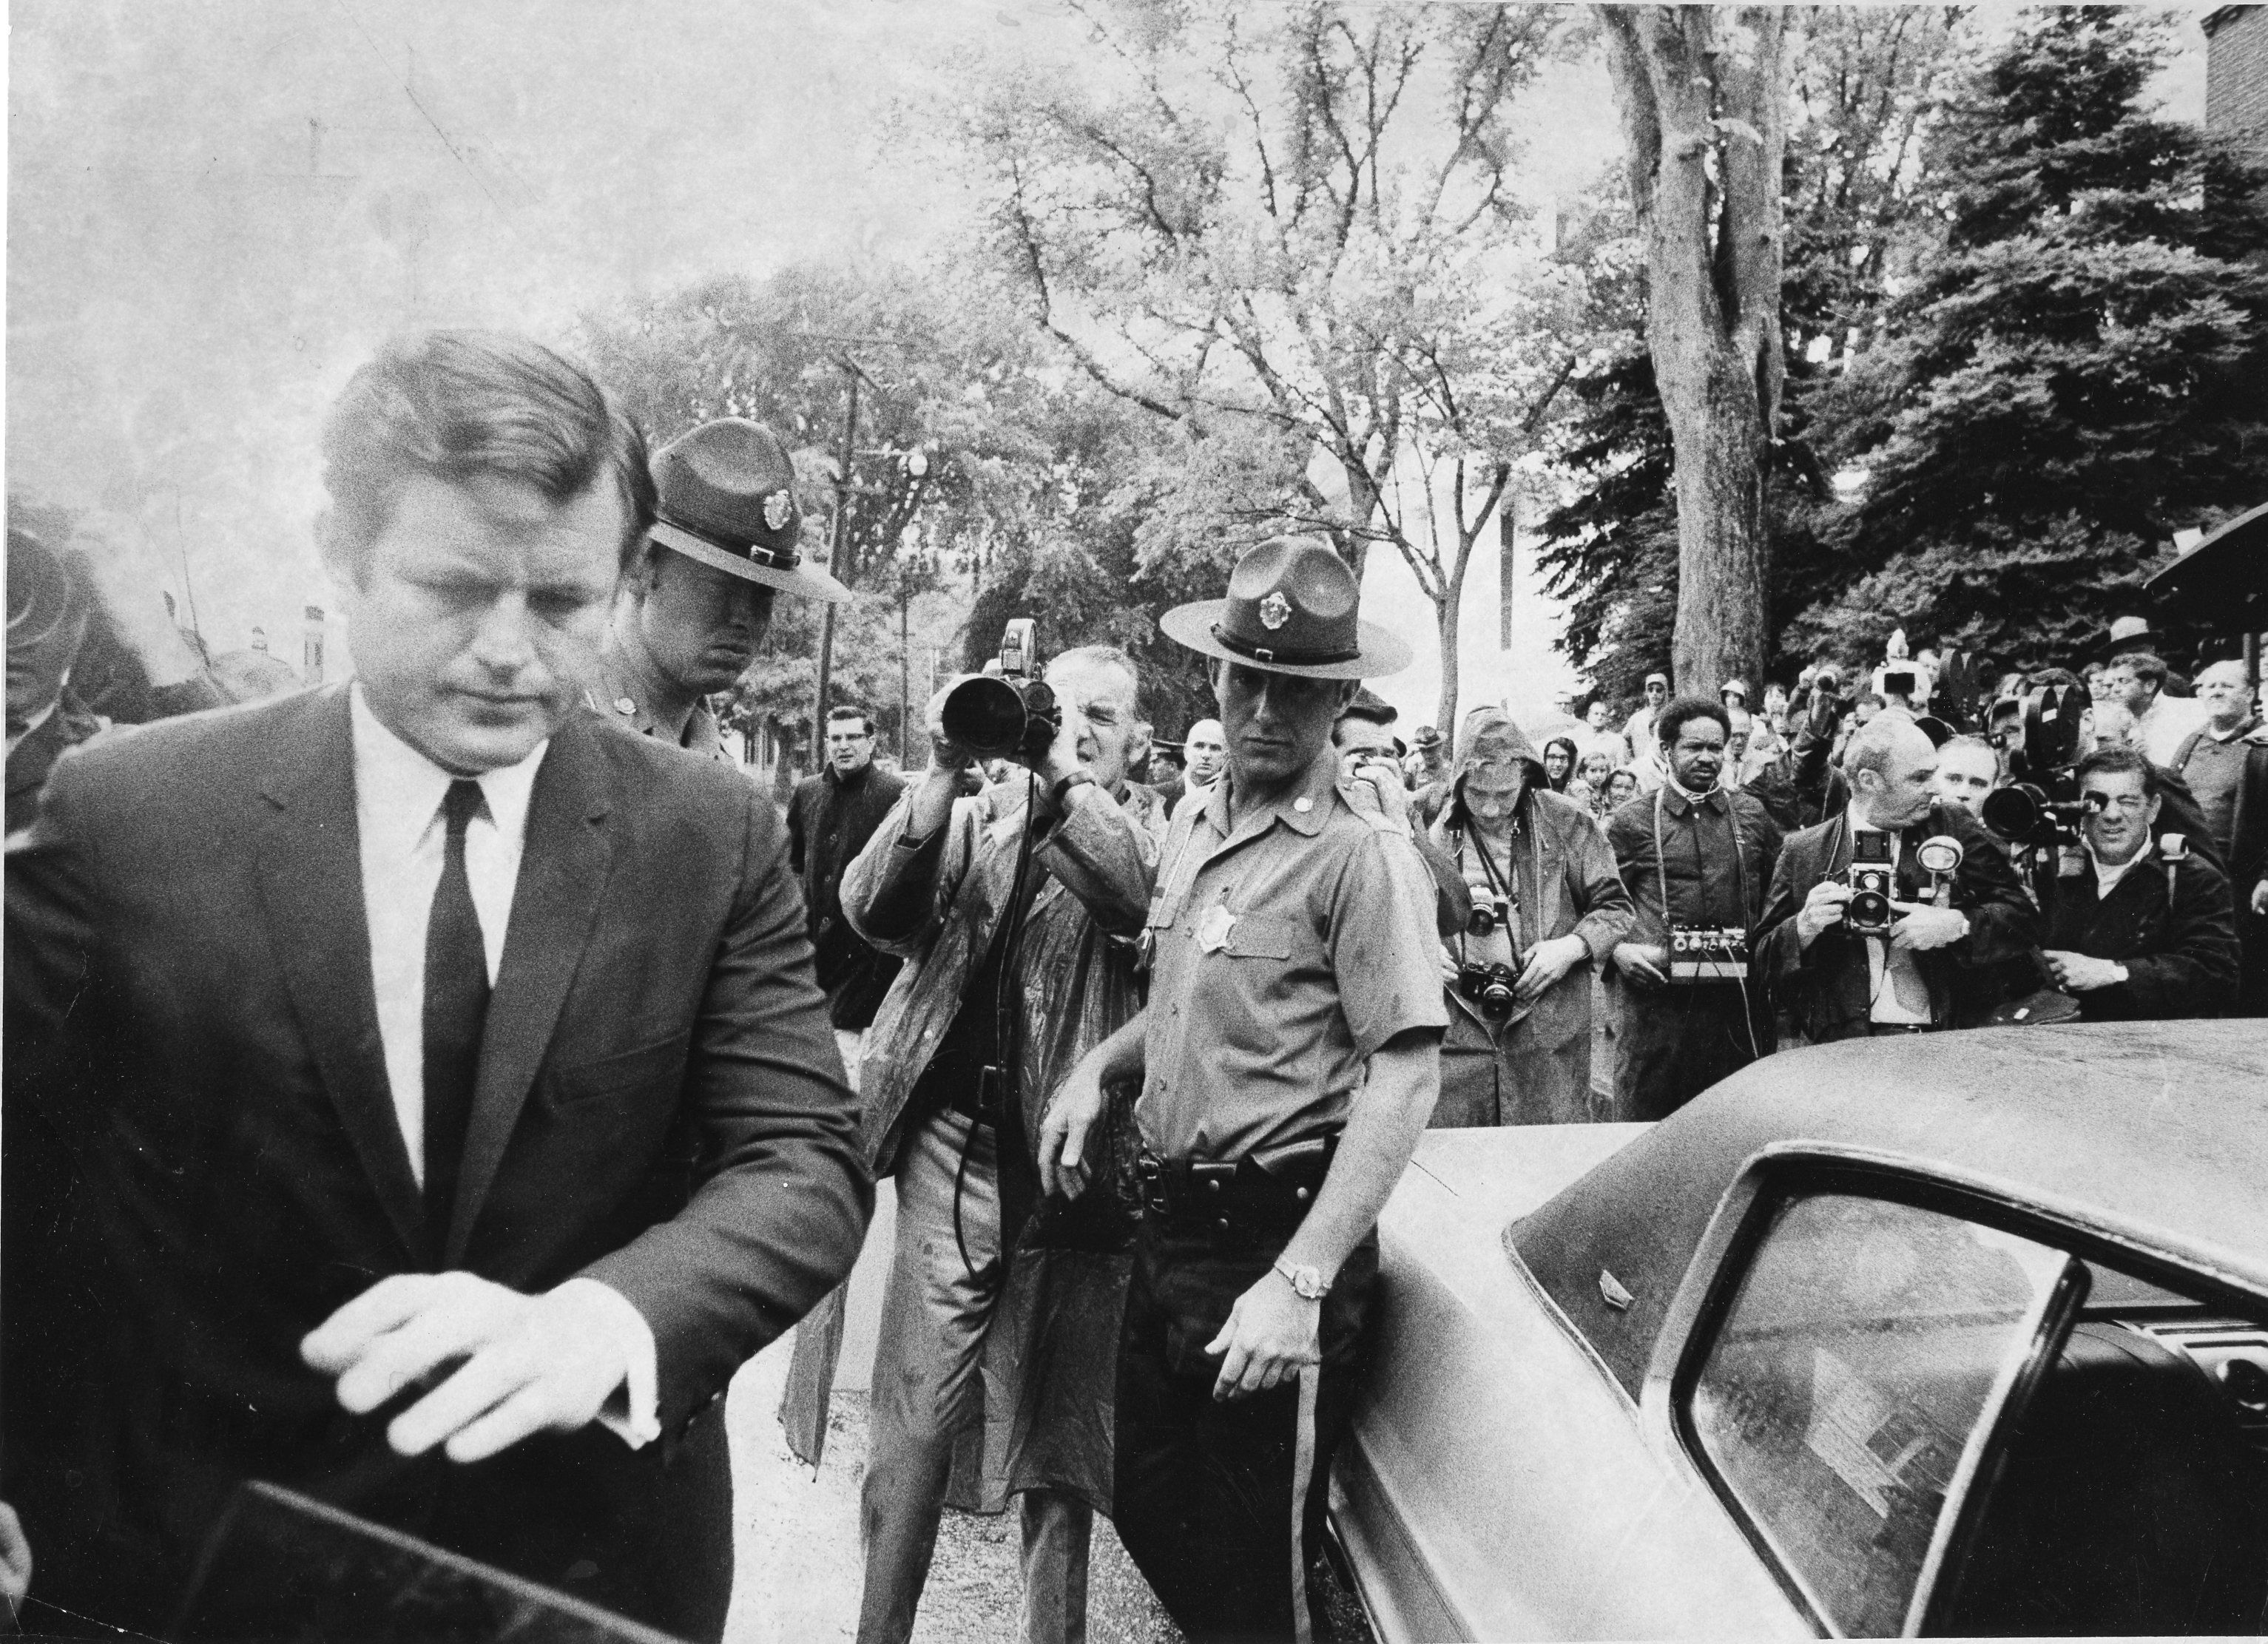 Chappaquiddick at 50: Ted Kennedy's long life in public service was